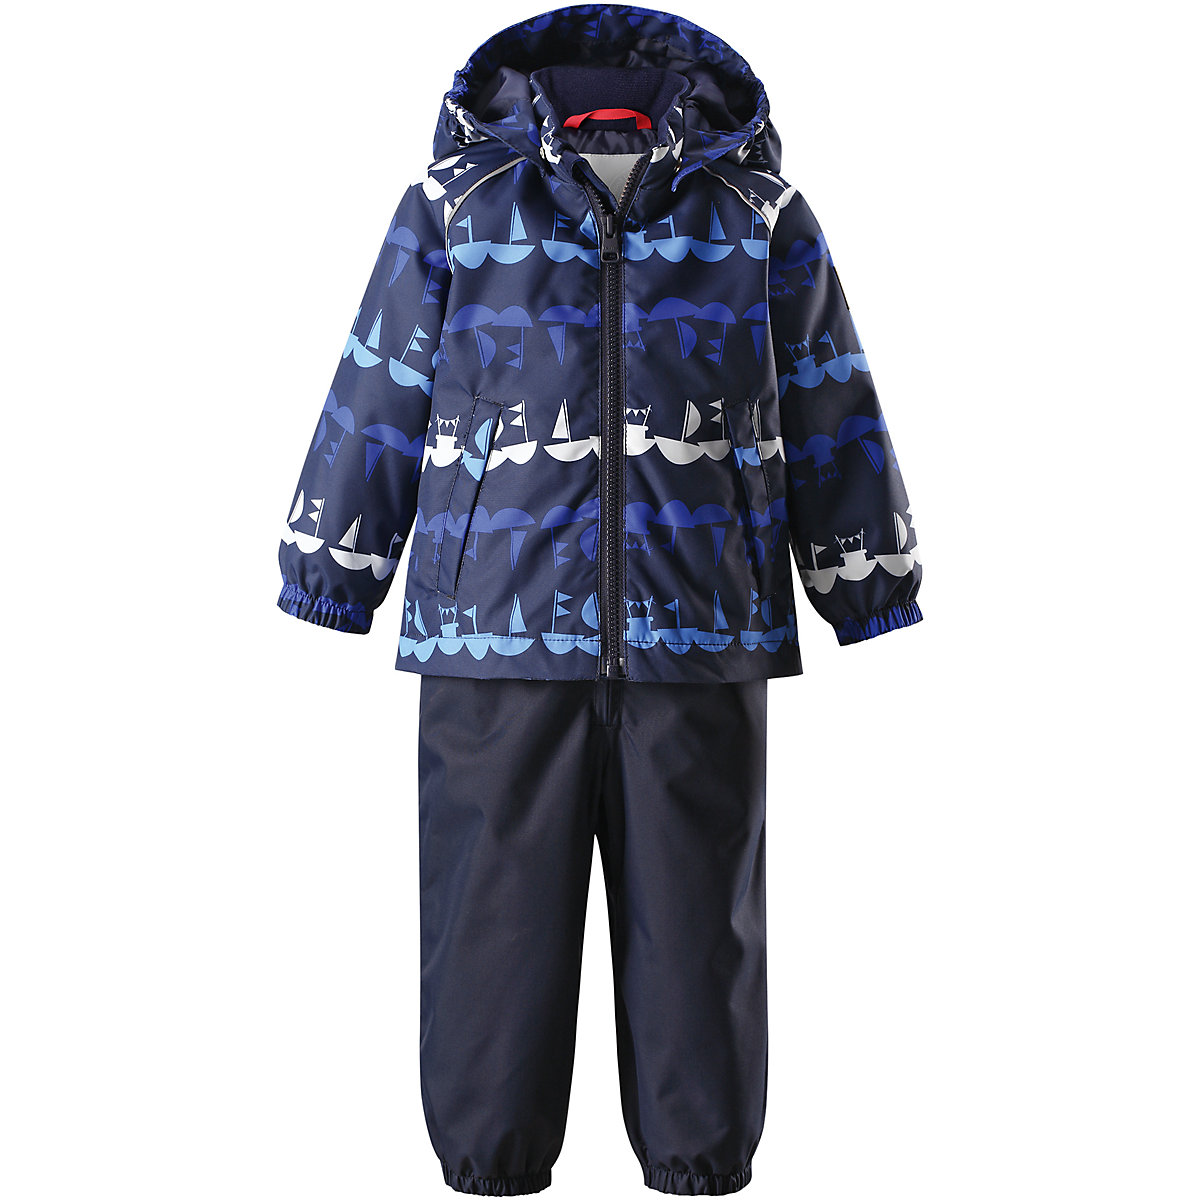 Baby's Sets Reima for boys 7636697 Suit Clothes Baby Kids Clothing Boy Girl Stuff kraft kf mo 3506 kglb черный золото